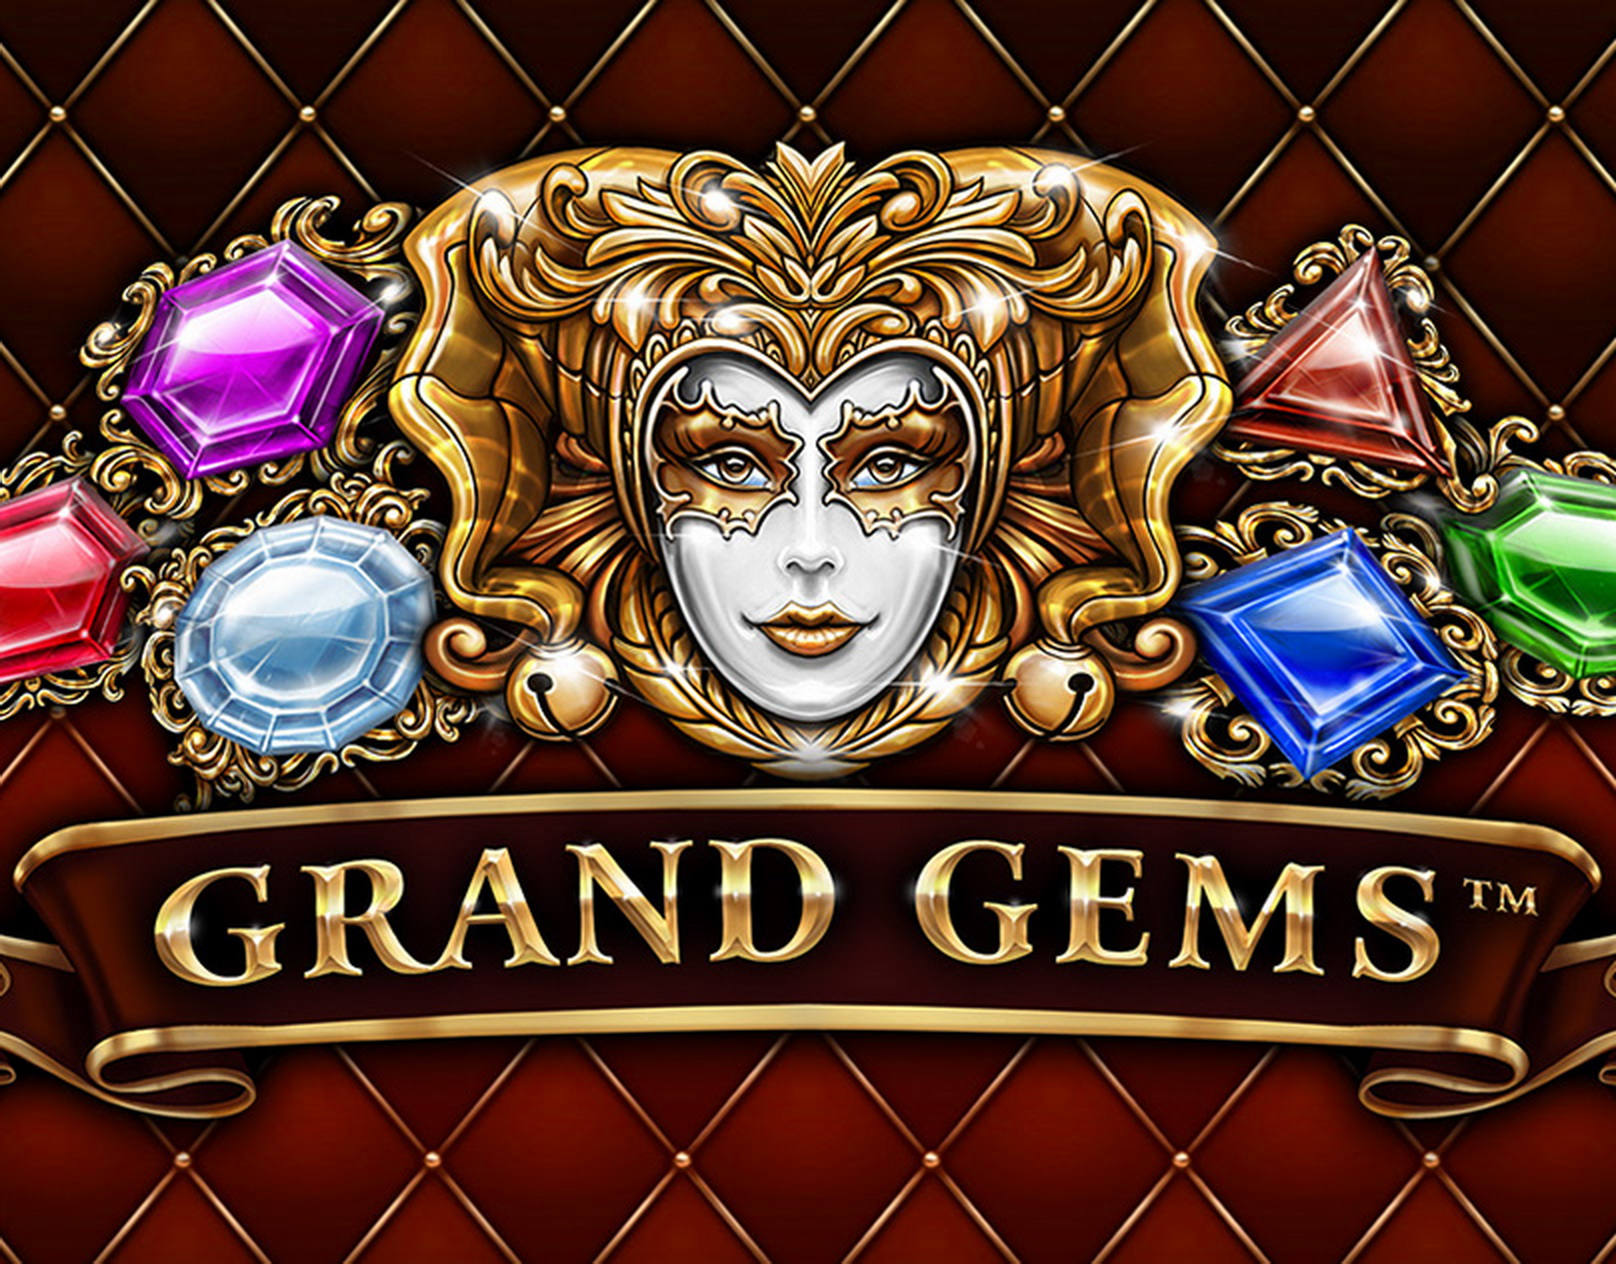 The Grand Gems (bet365 Software) Online Slot Demo Game by bet365 Software